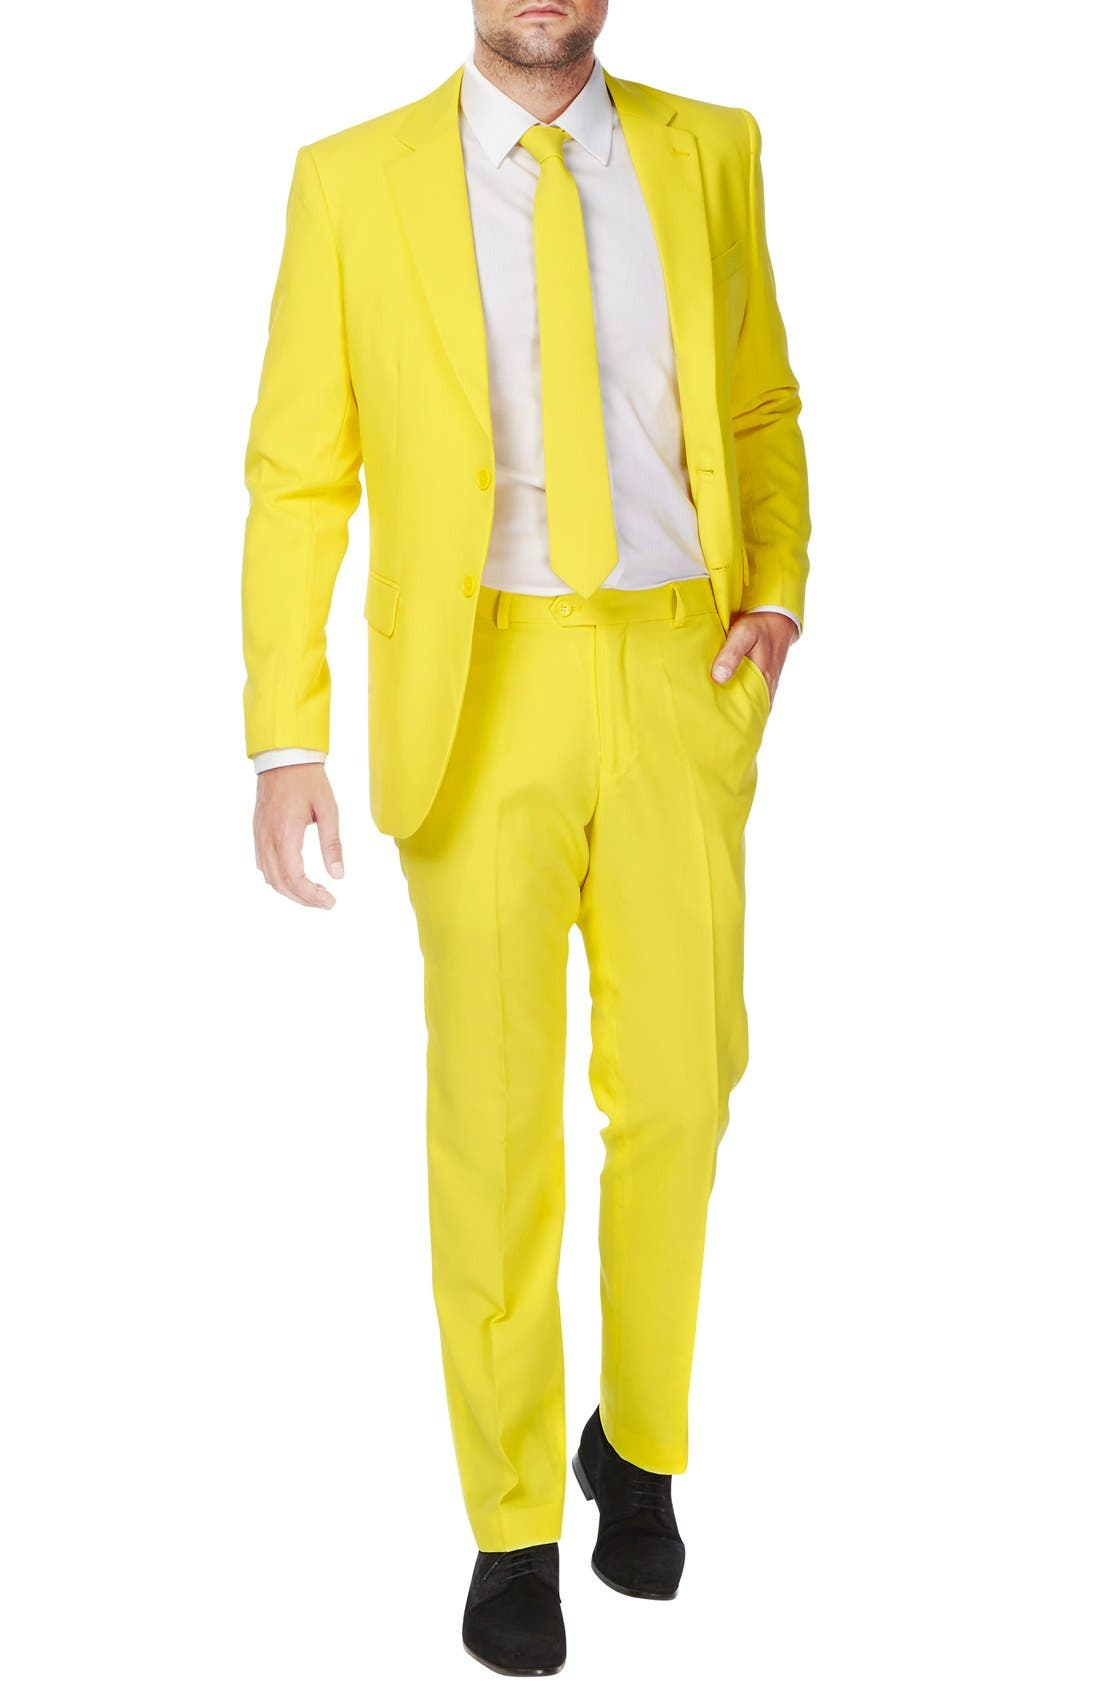 'Yellow Fellow' Trim Fit Two-Piece Suit with Tie,                             Main thumbnail 1, color,                             Yellow